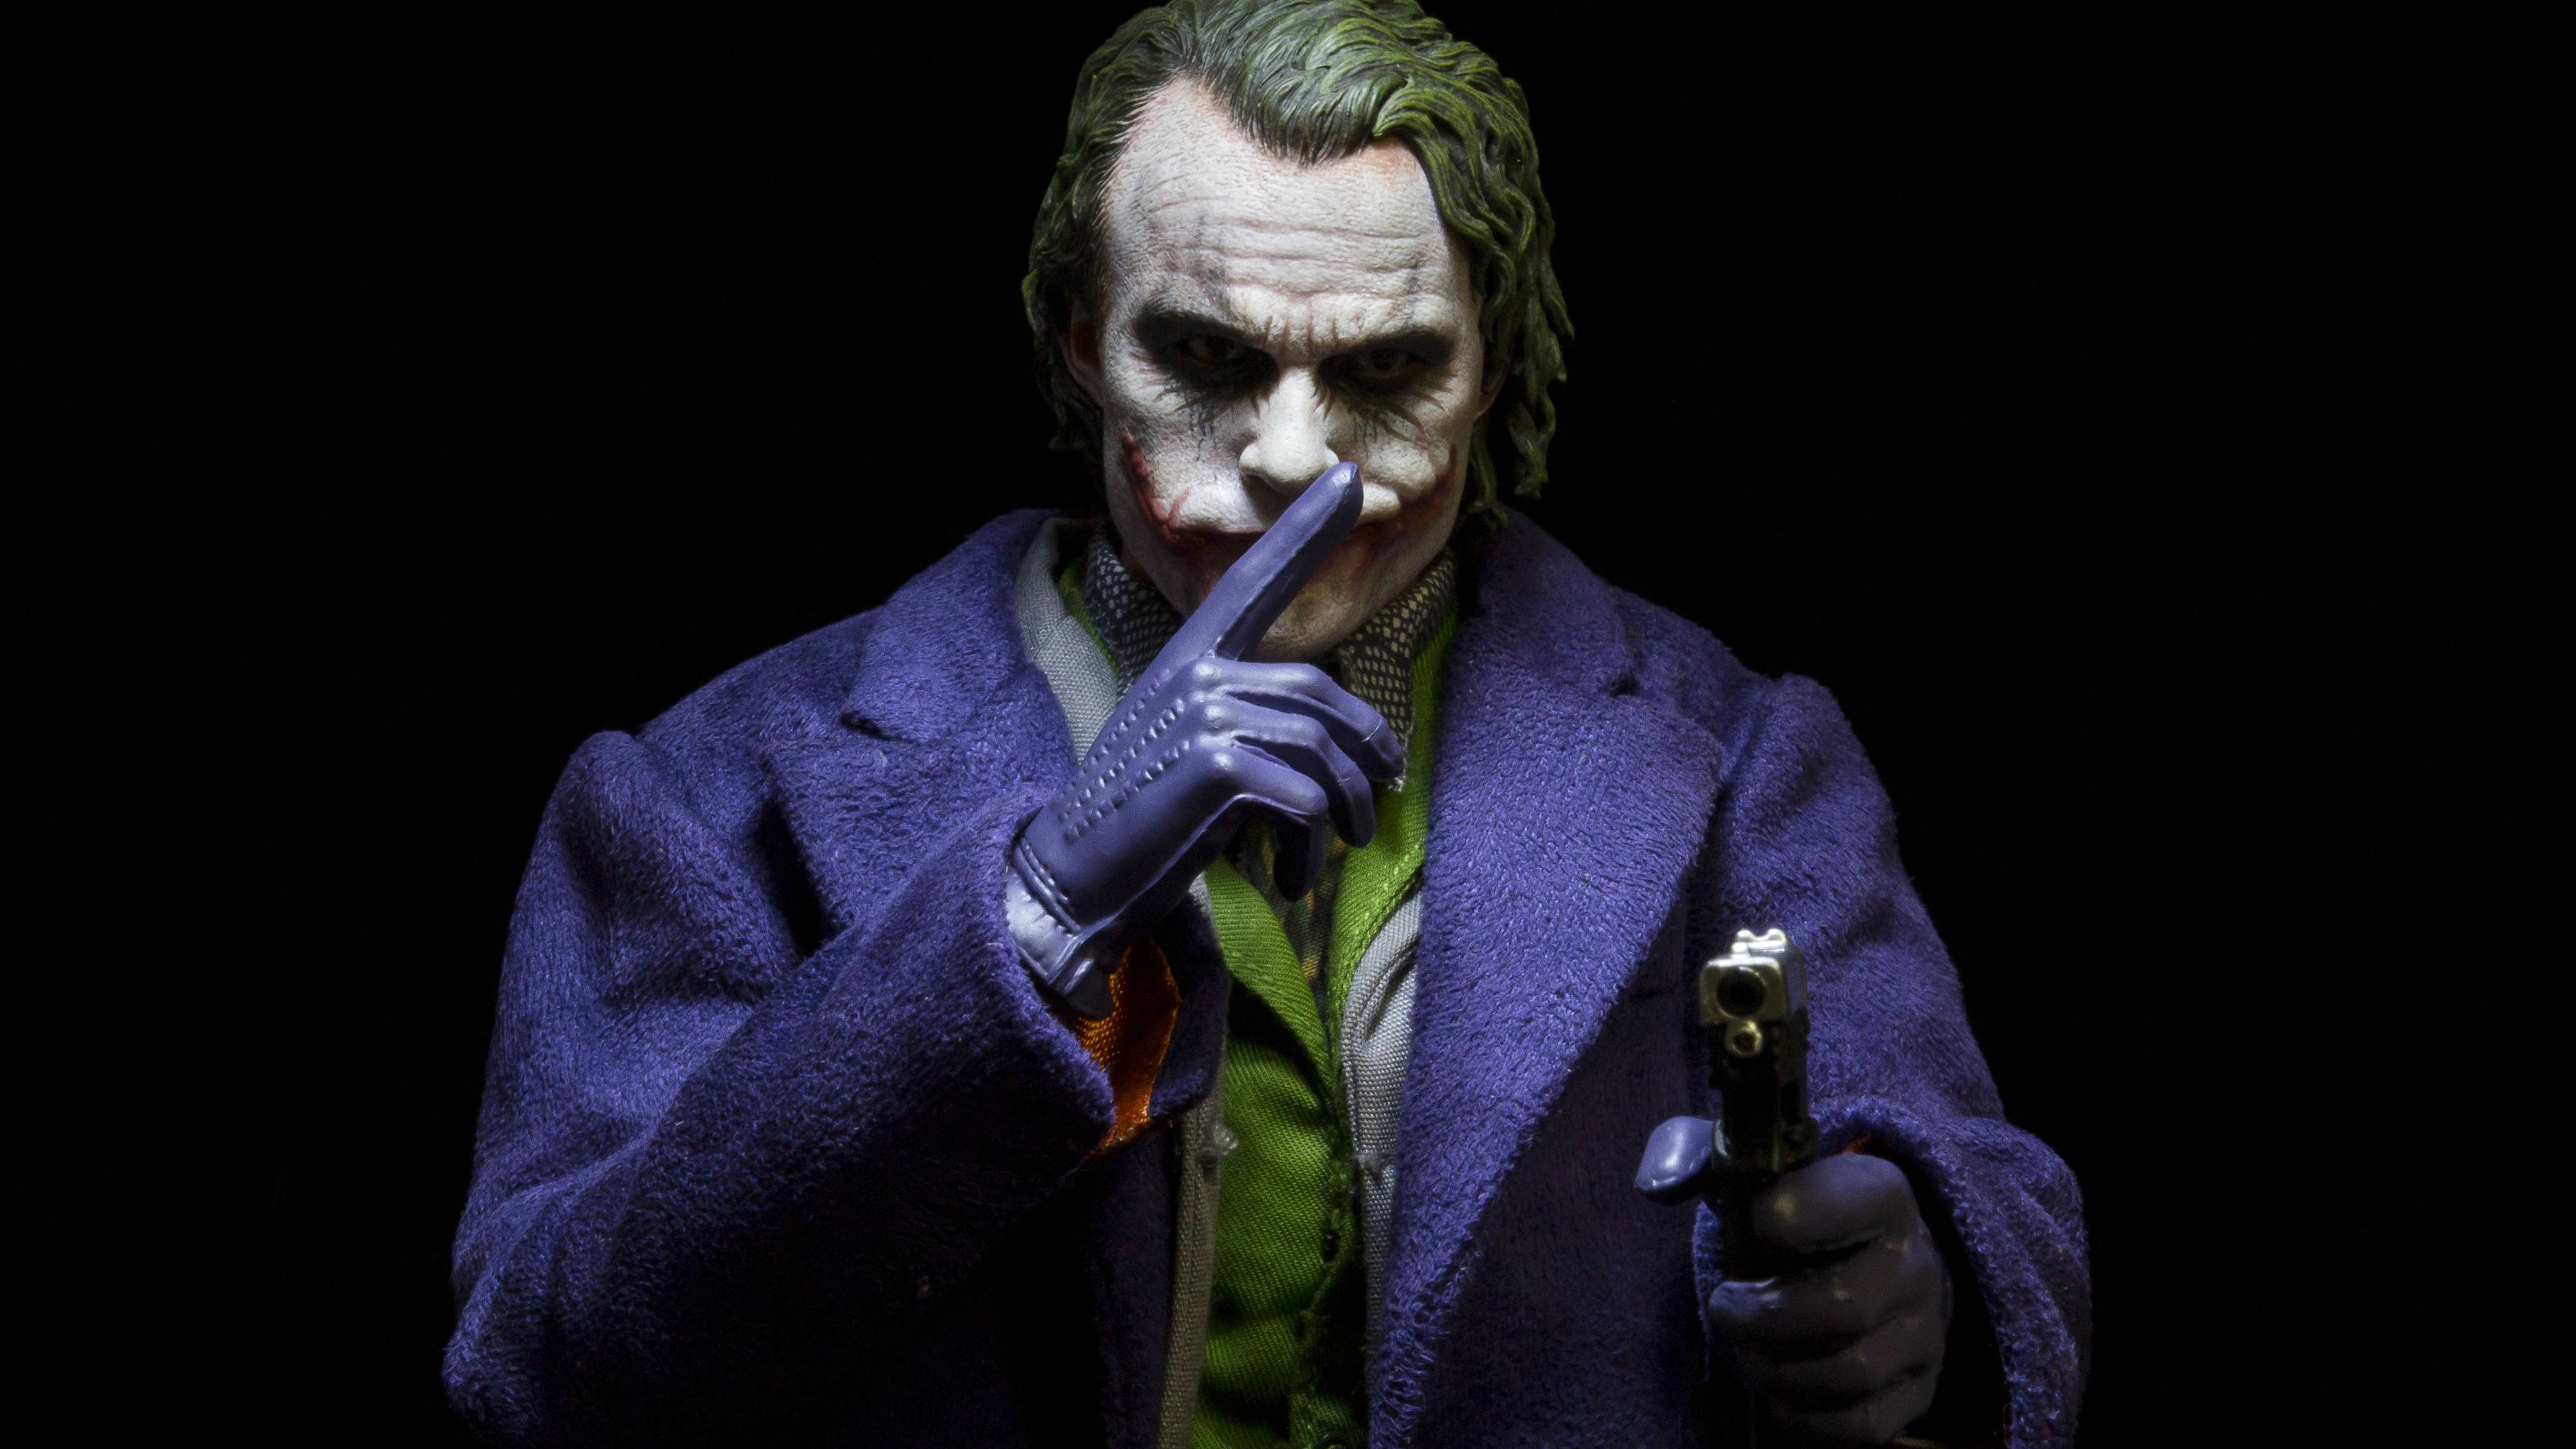 Wallpapers 4k Joker Art 2019 4k 4k